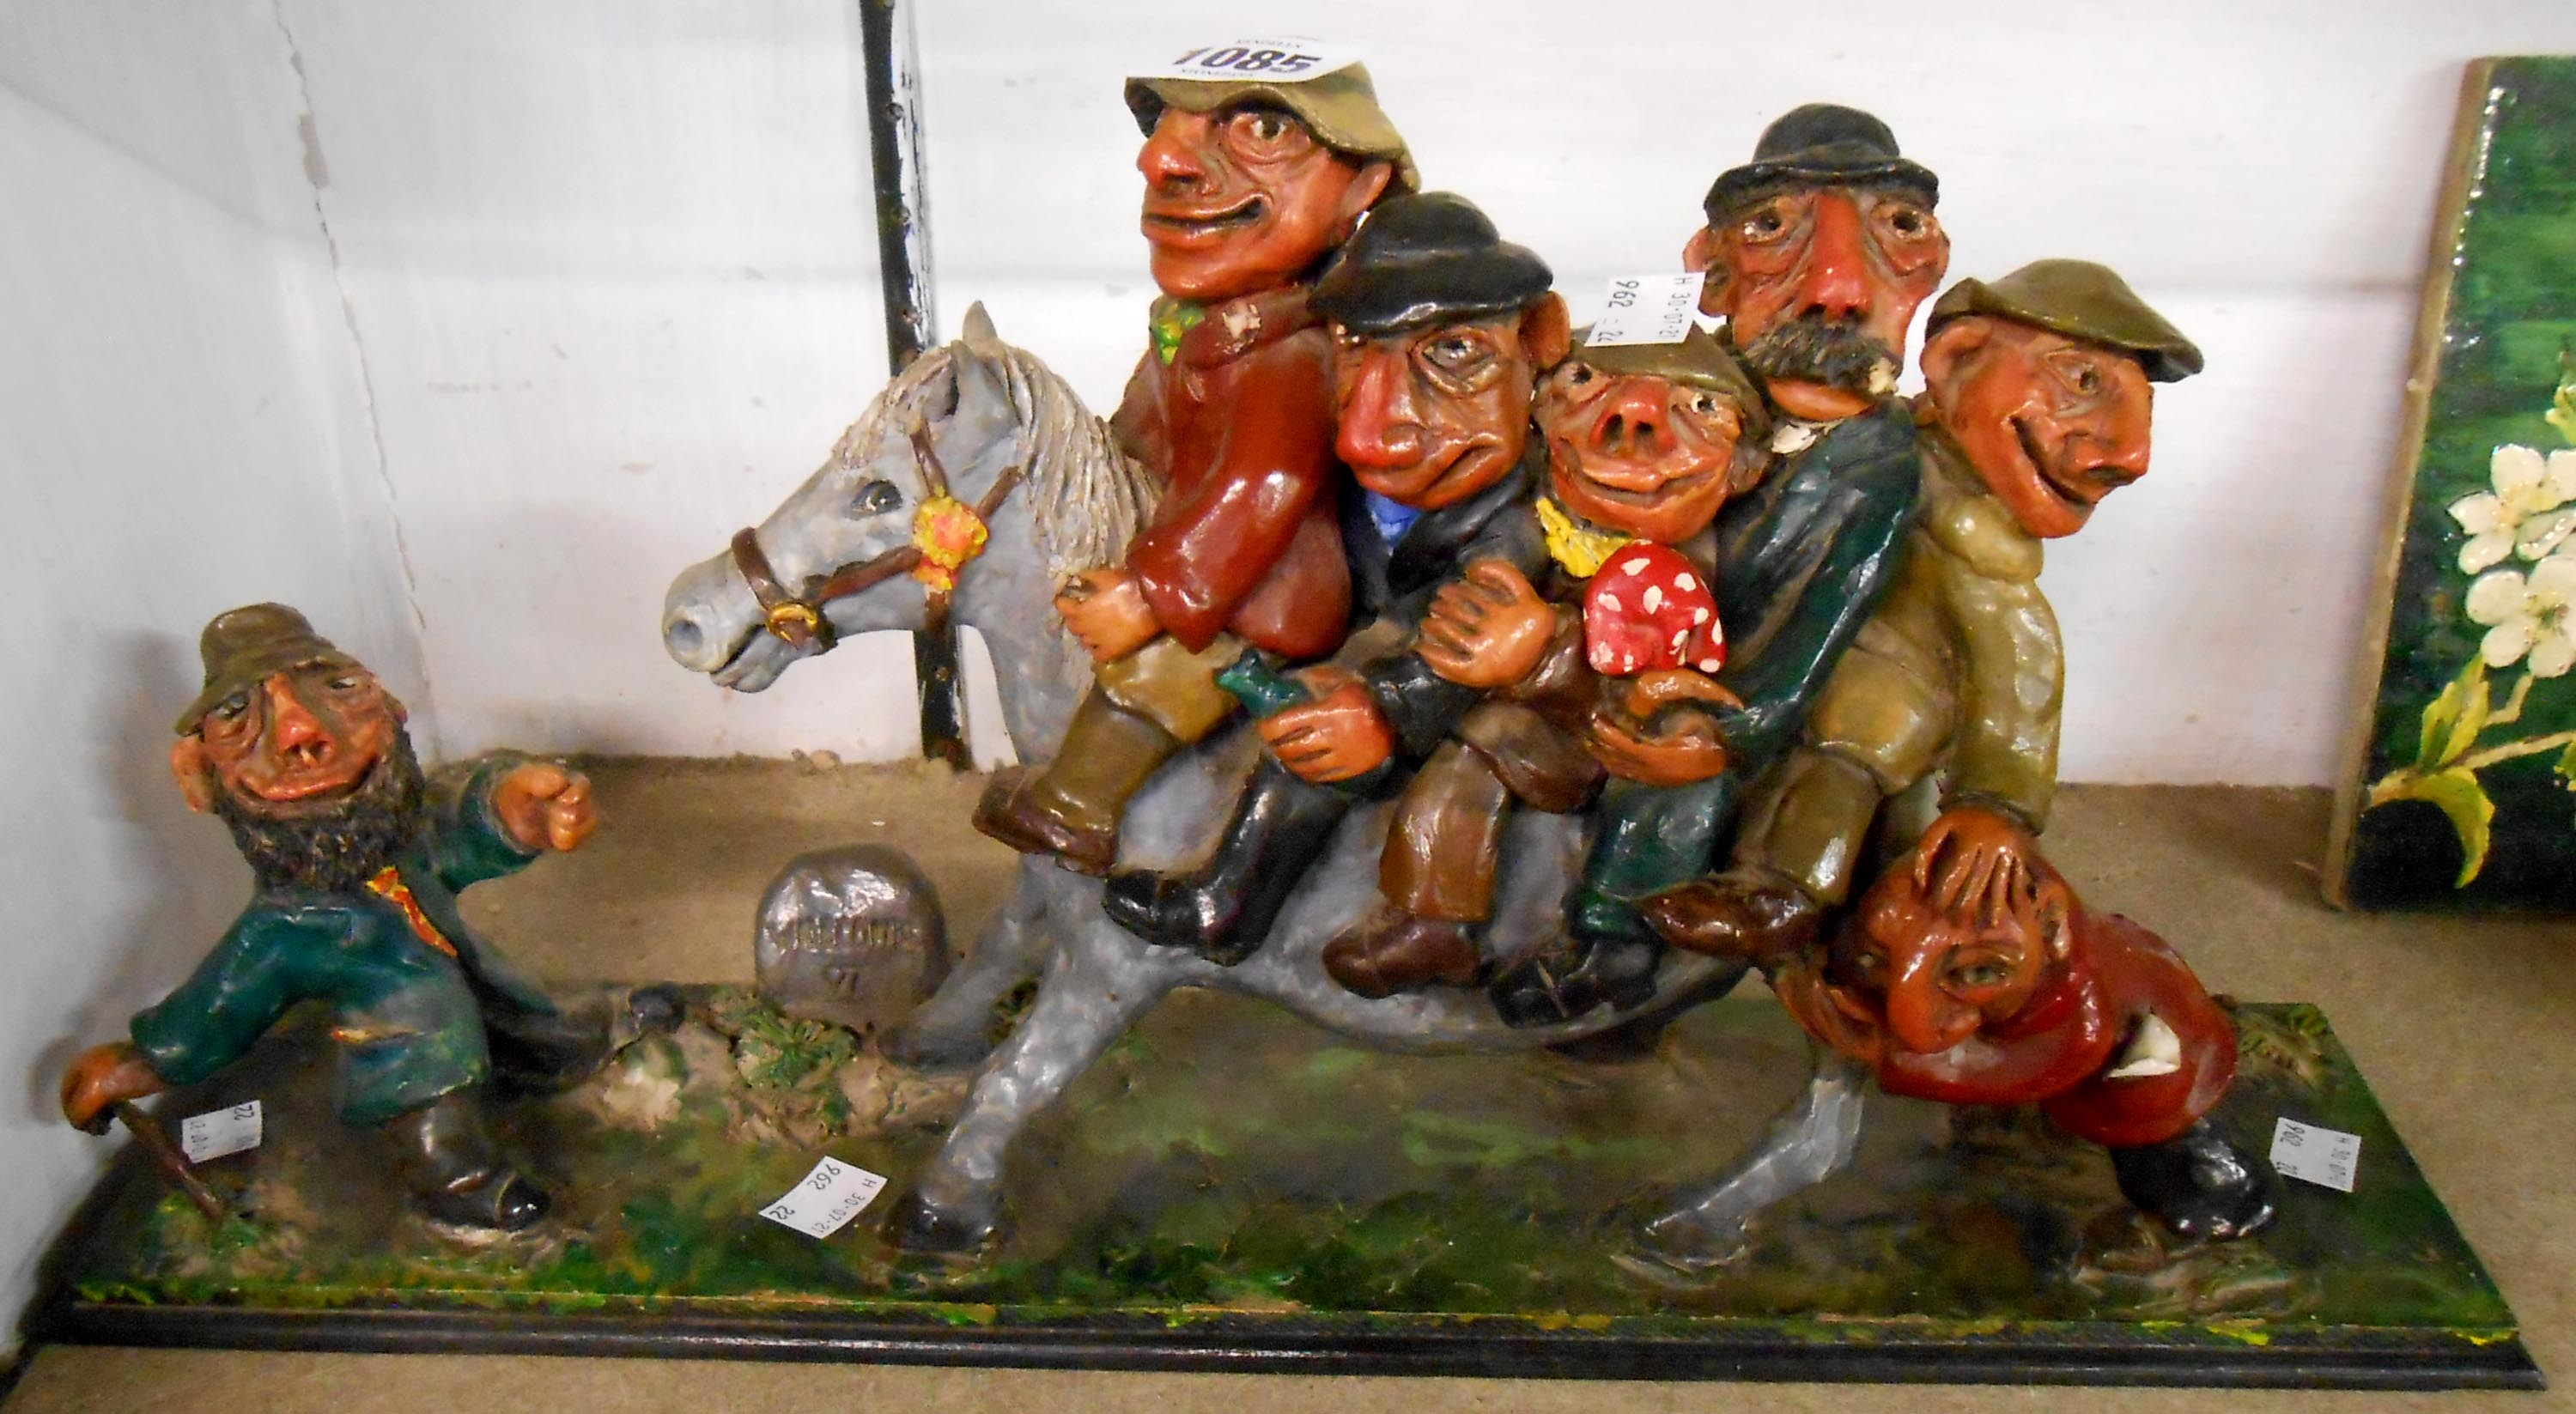 A vintage hand built modeller's clay figurine depicting a scene from Widecombe Fair